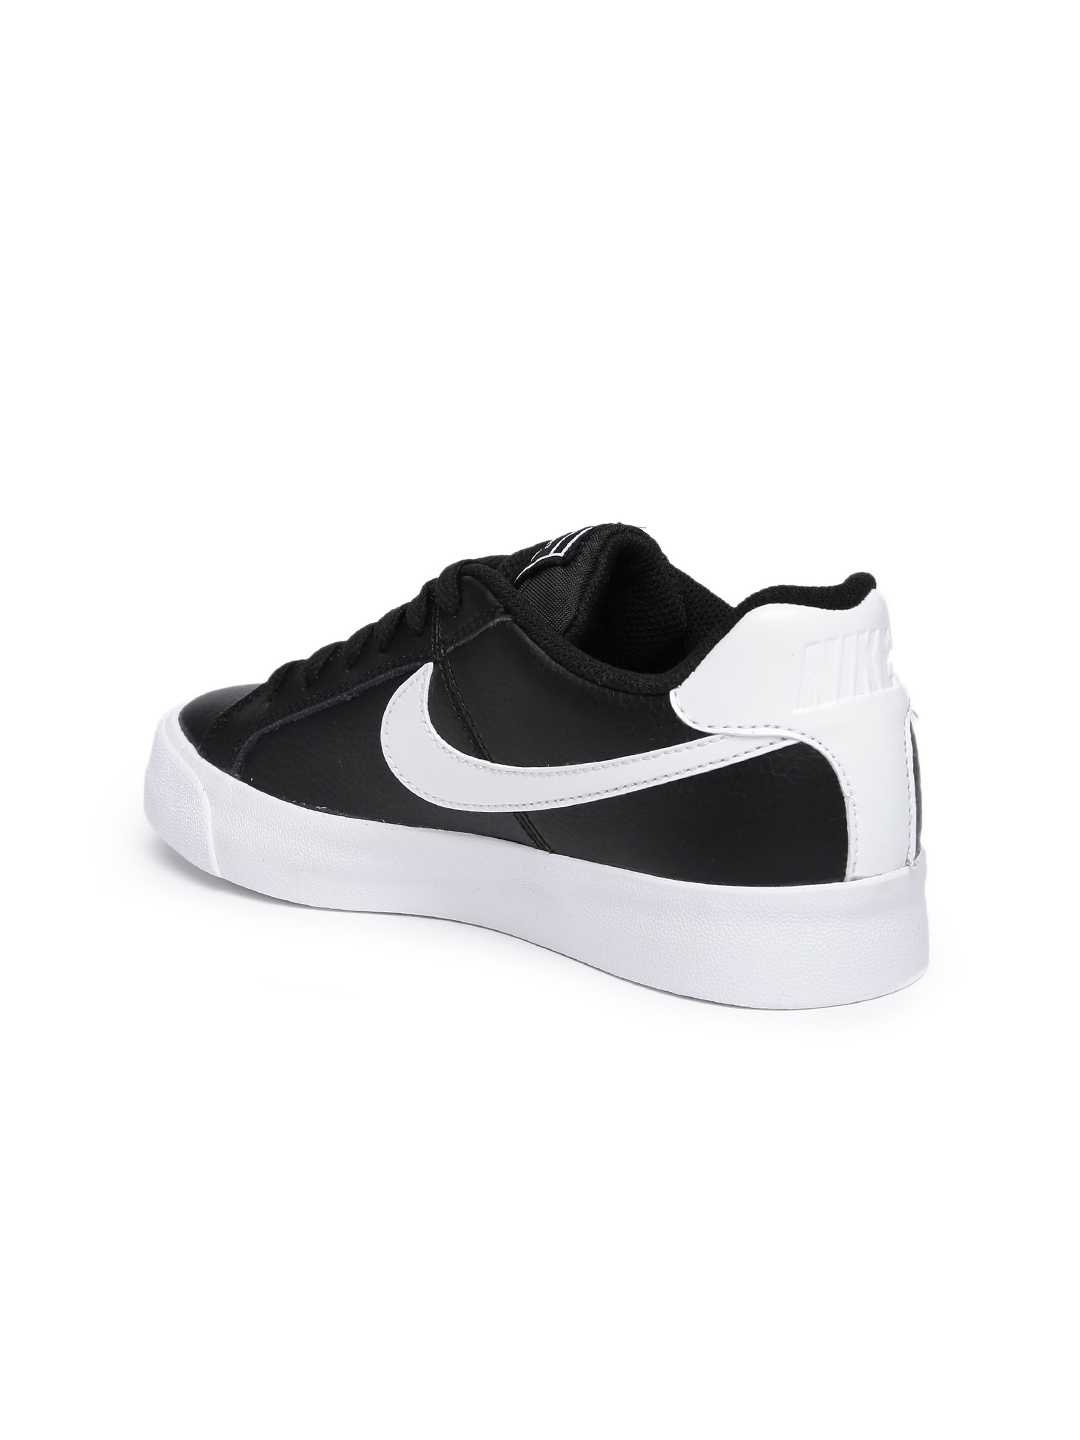 b4c286592b72ad Buy Nike Women Black Court Royale Leather Sneakers - Casual Shoes ...